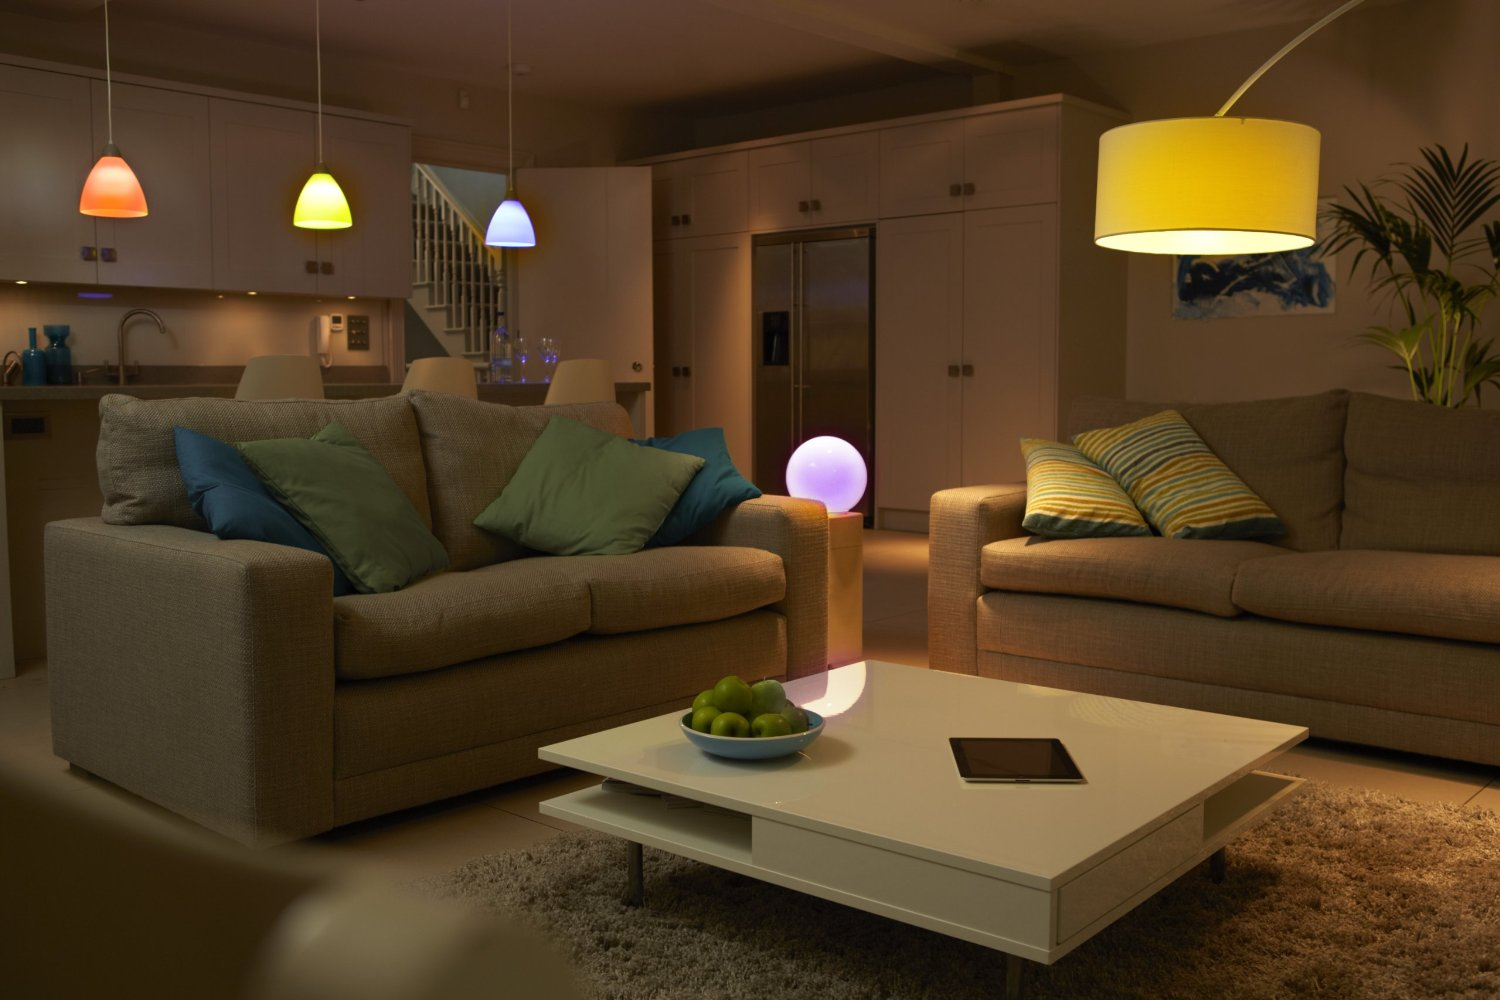 Philips Hue Alternativen Fr Das Smart Home Lichtsystem GIGA